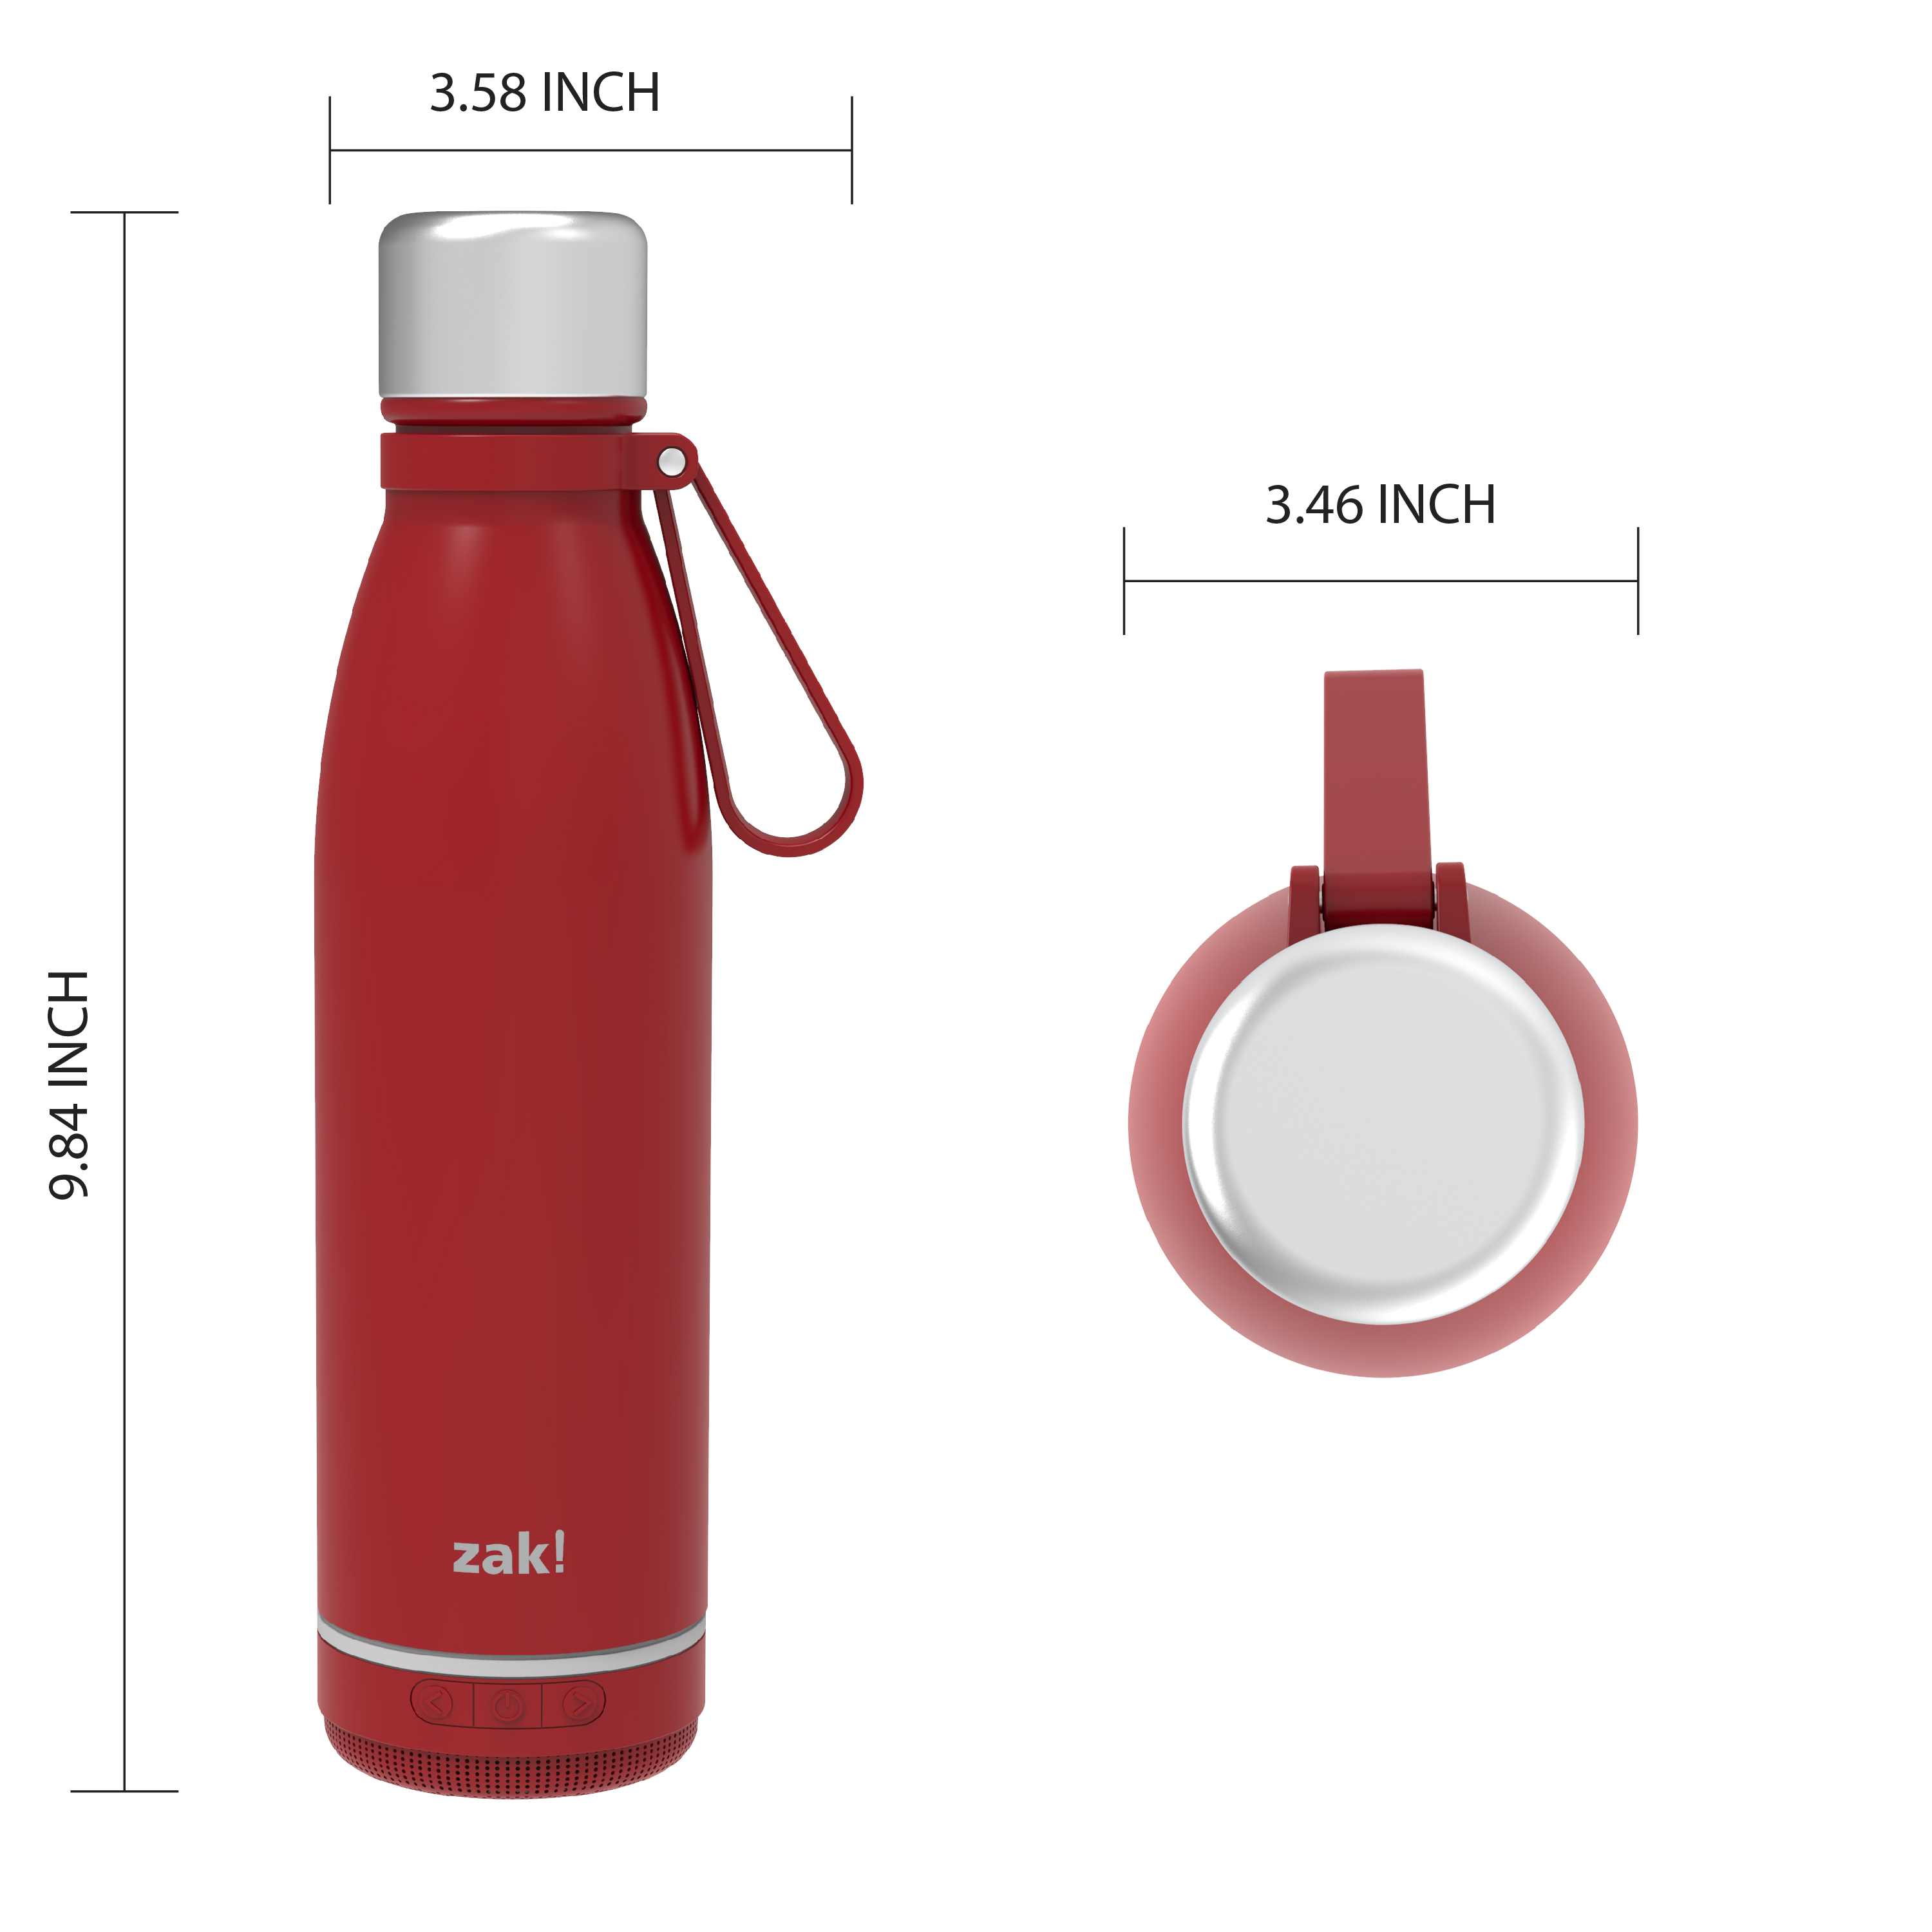 Zak Play 17.5 ounce Stainless Steel Tumbler with Bluetooth Speaker, Red slideshow image 5